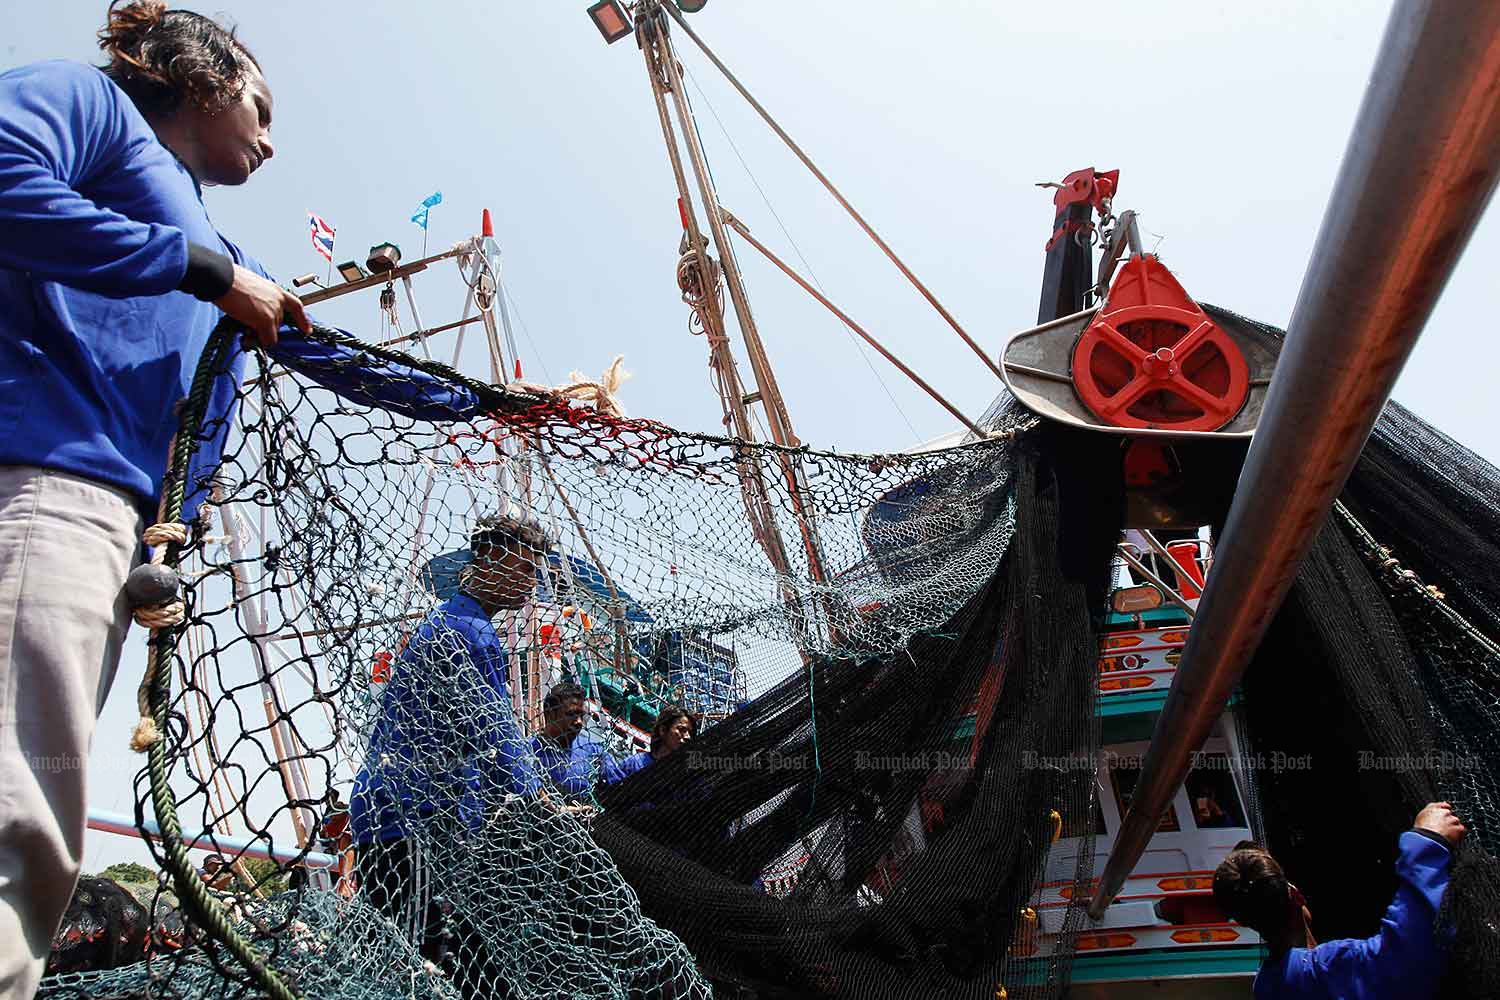 Thai-MECC will be in charge of combating IUU fishing. (Bangkok Post file photo)